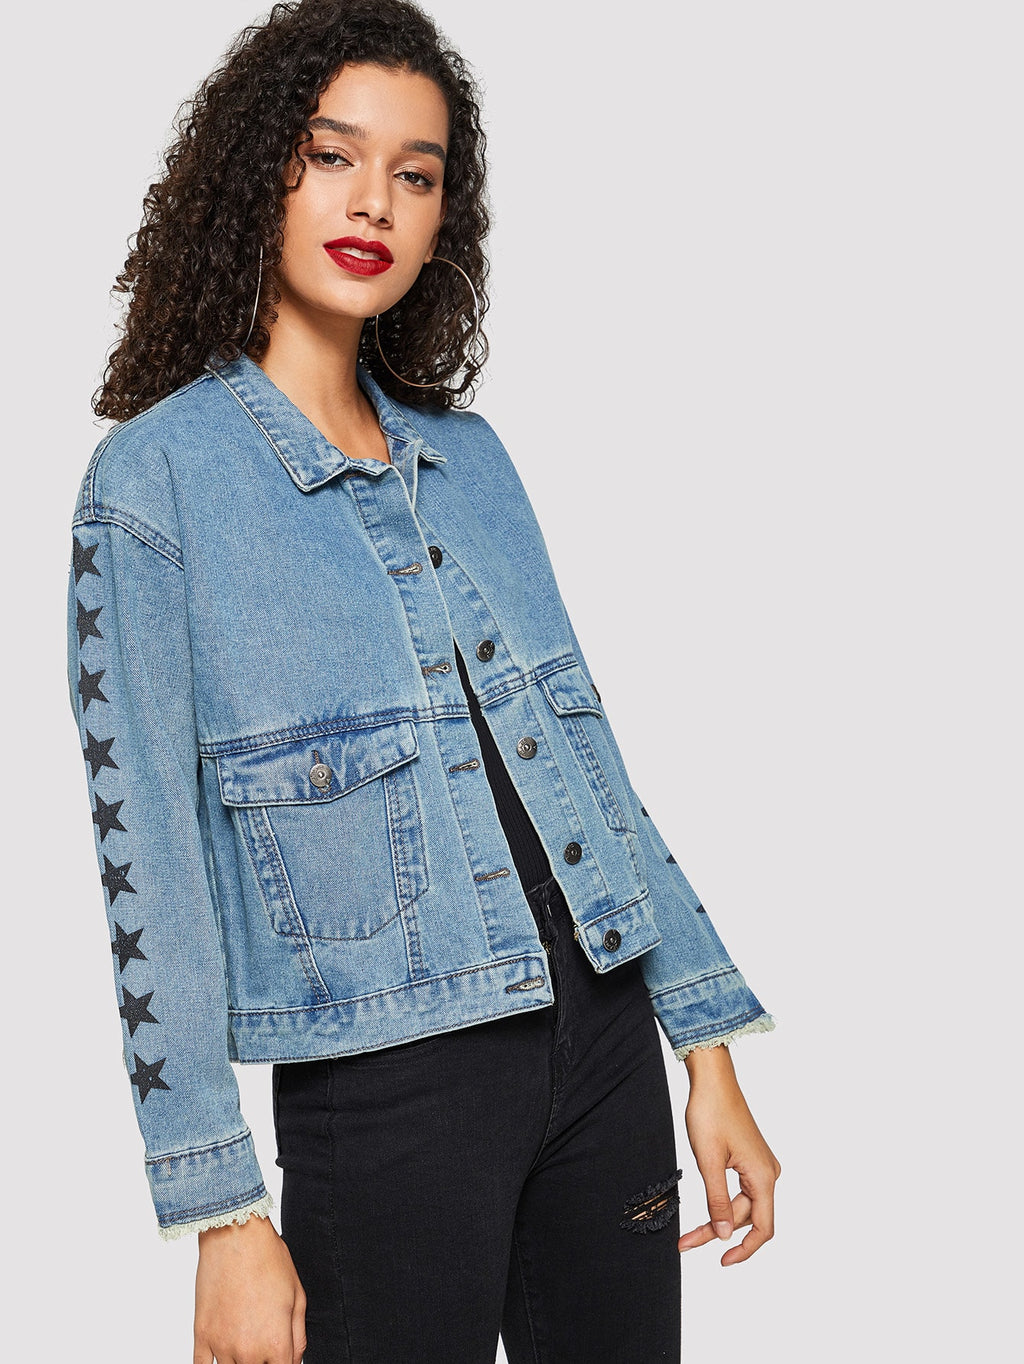 Star Print Pocket Detail Denim Jacket